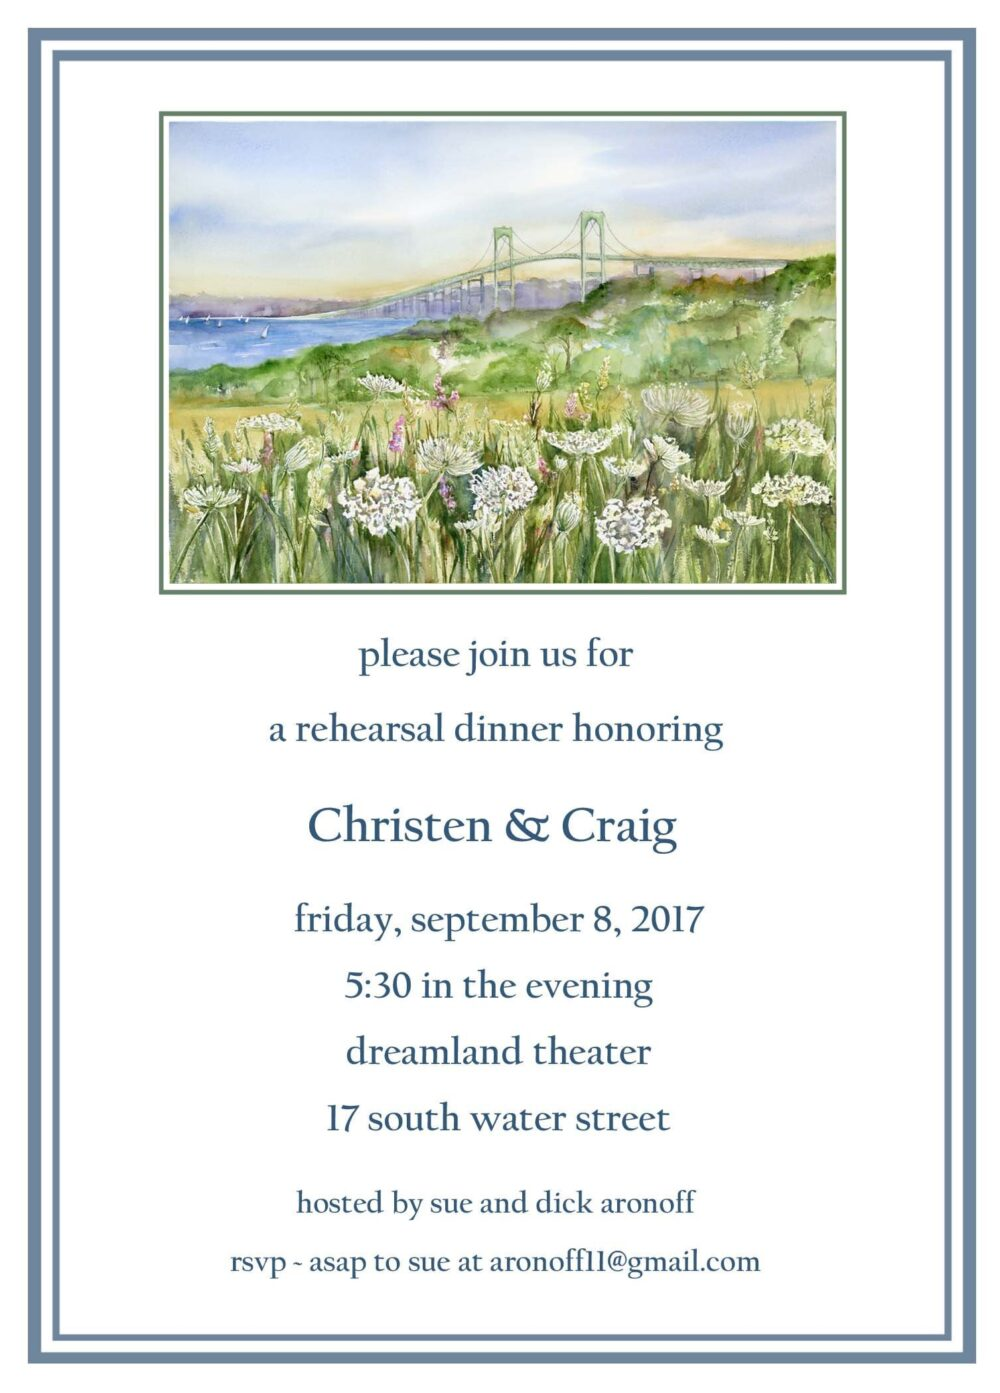 25 Newport Rhode Island Wedding Invitations, Rehearsal Dinner Save The Date Cards, Queen Ann's Lace Invites